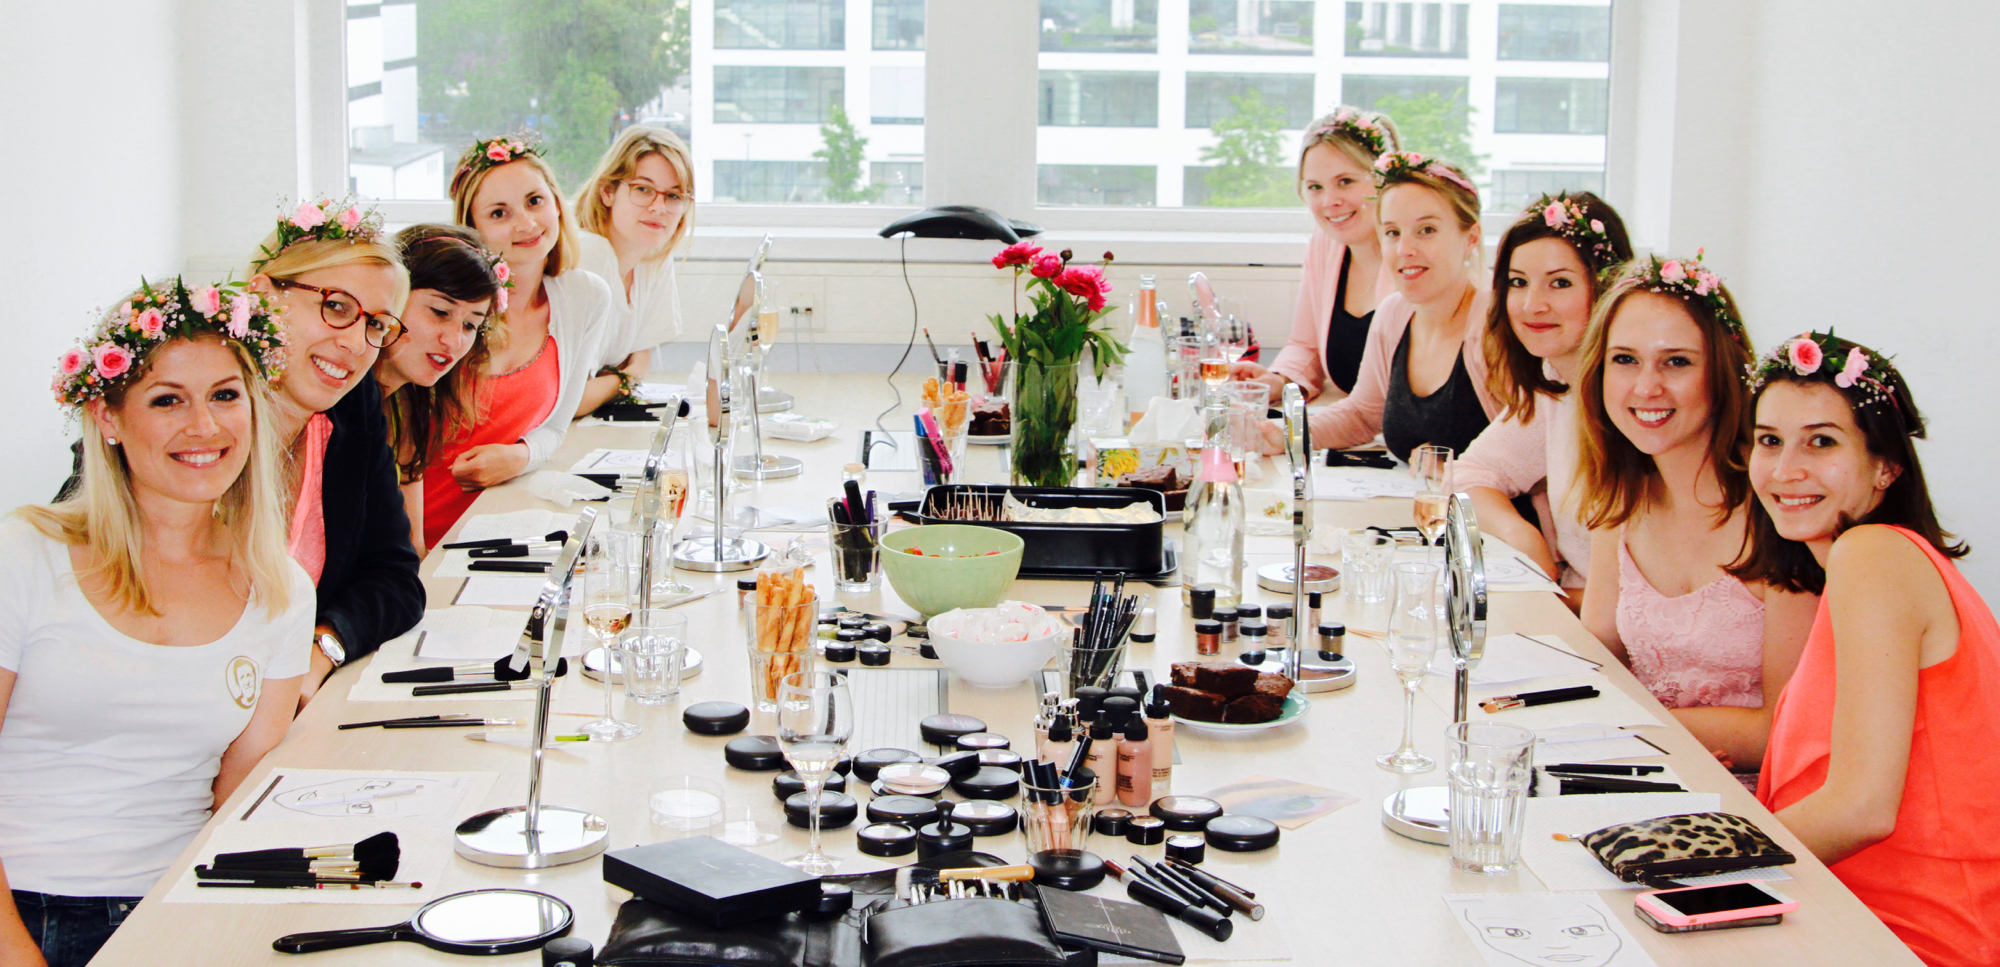 JGA Make-Up Party bei Wandelbar Make-Up